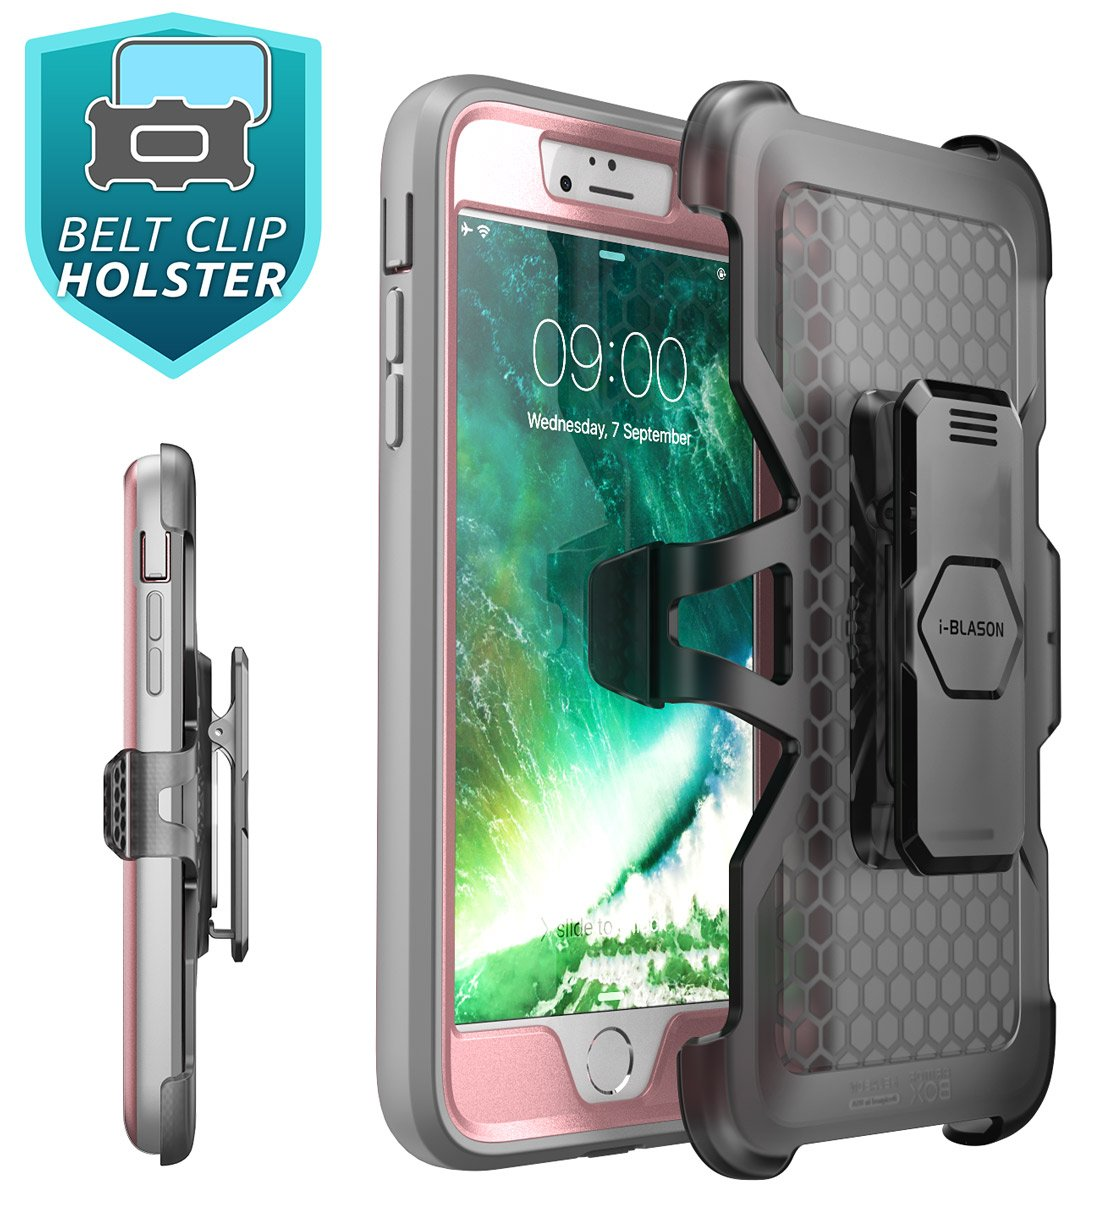 iPhone 8 Plus Case, iPhone 7 Plus case, i-Blason [Heavy Duty Protection] [Magma Series] Shock Reduction/Full body Bumper Case with Built-in Screen Protector for iPhone 8 Plus 2017 (Pink) by i-Blason (Image #5)